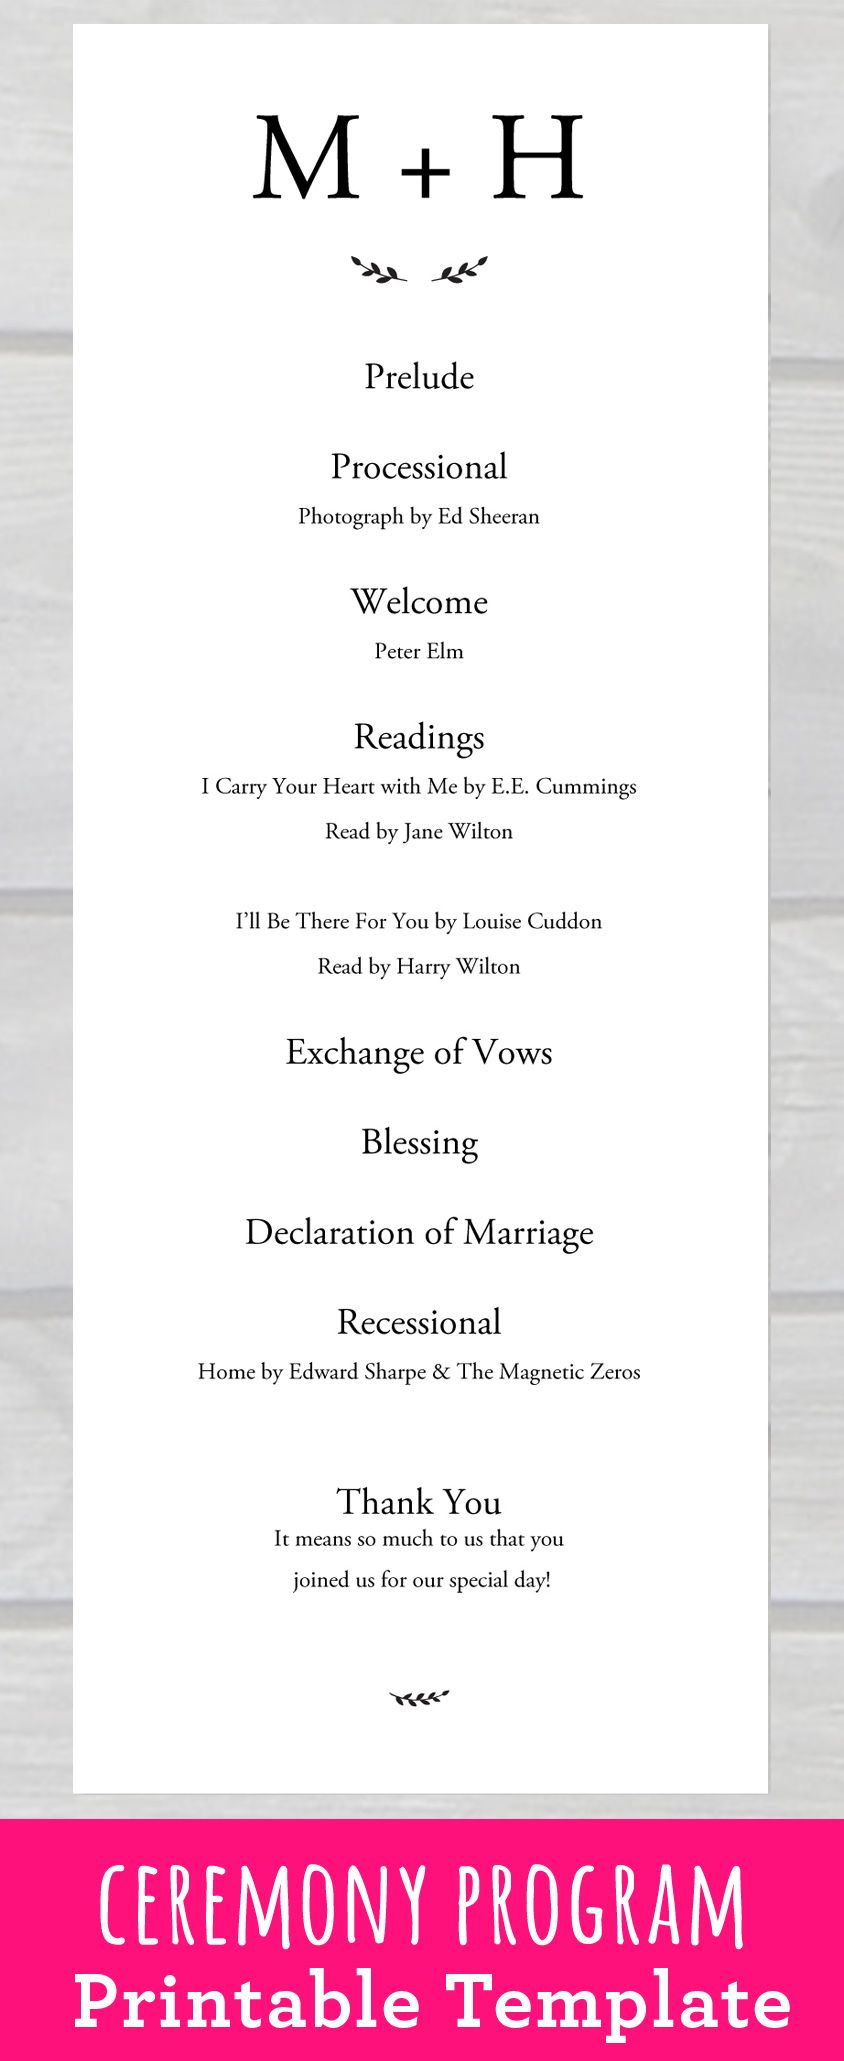 Wedding Ceremony Program Template Pdf Printable For Your Rustic Or